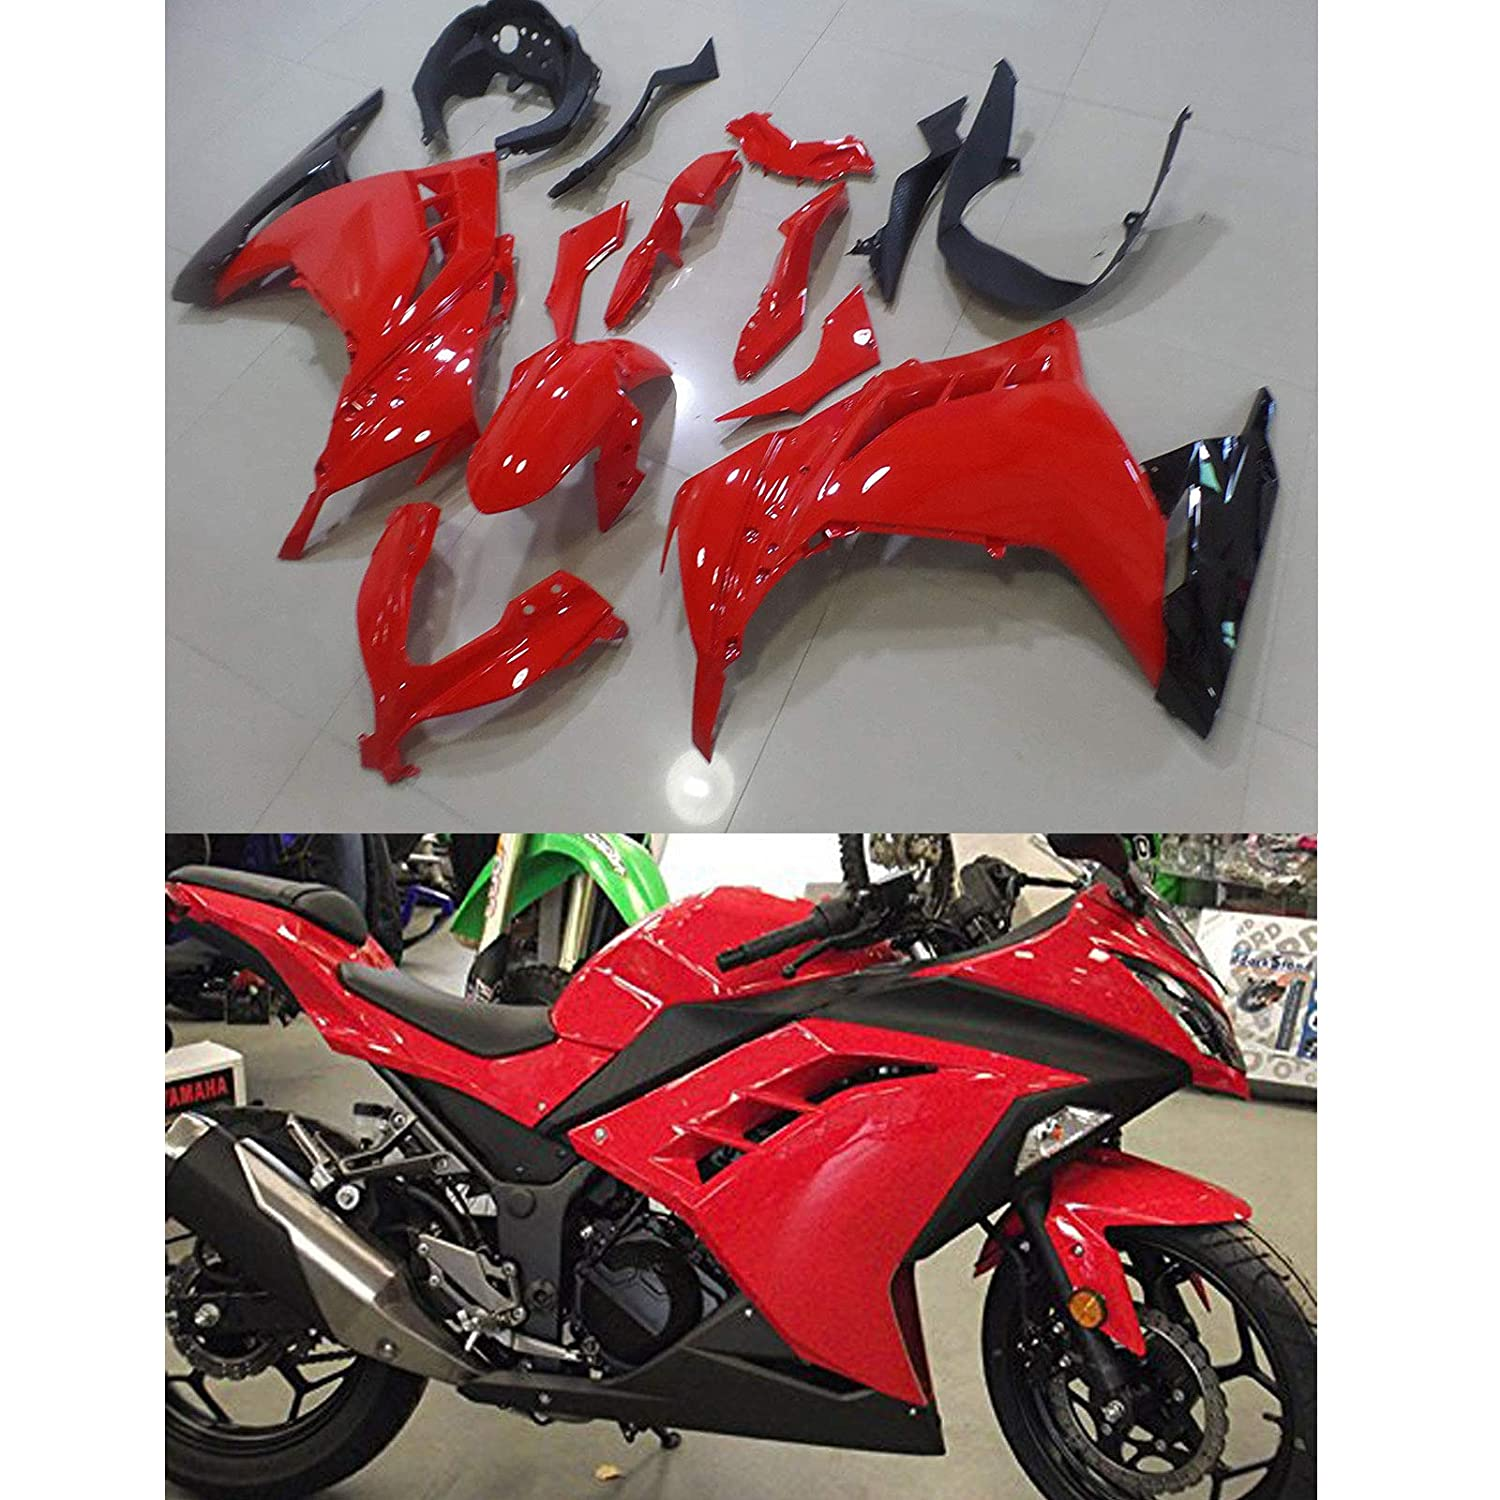 Moto Onfire Green & Black ABS Injection Fairings Kit Fit for Kawasaki Ninja 300 EX300R ZX300R 2013 2014 2015 2016